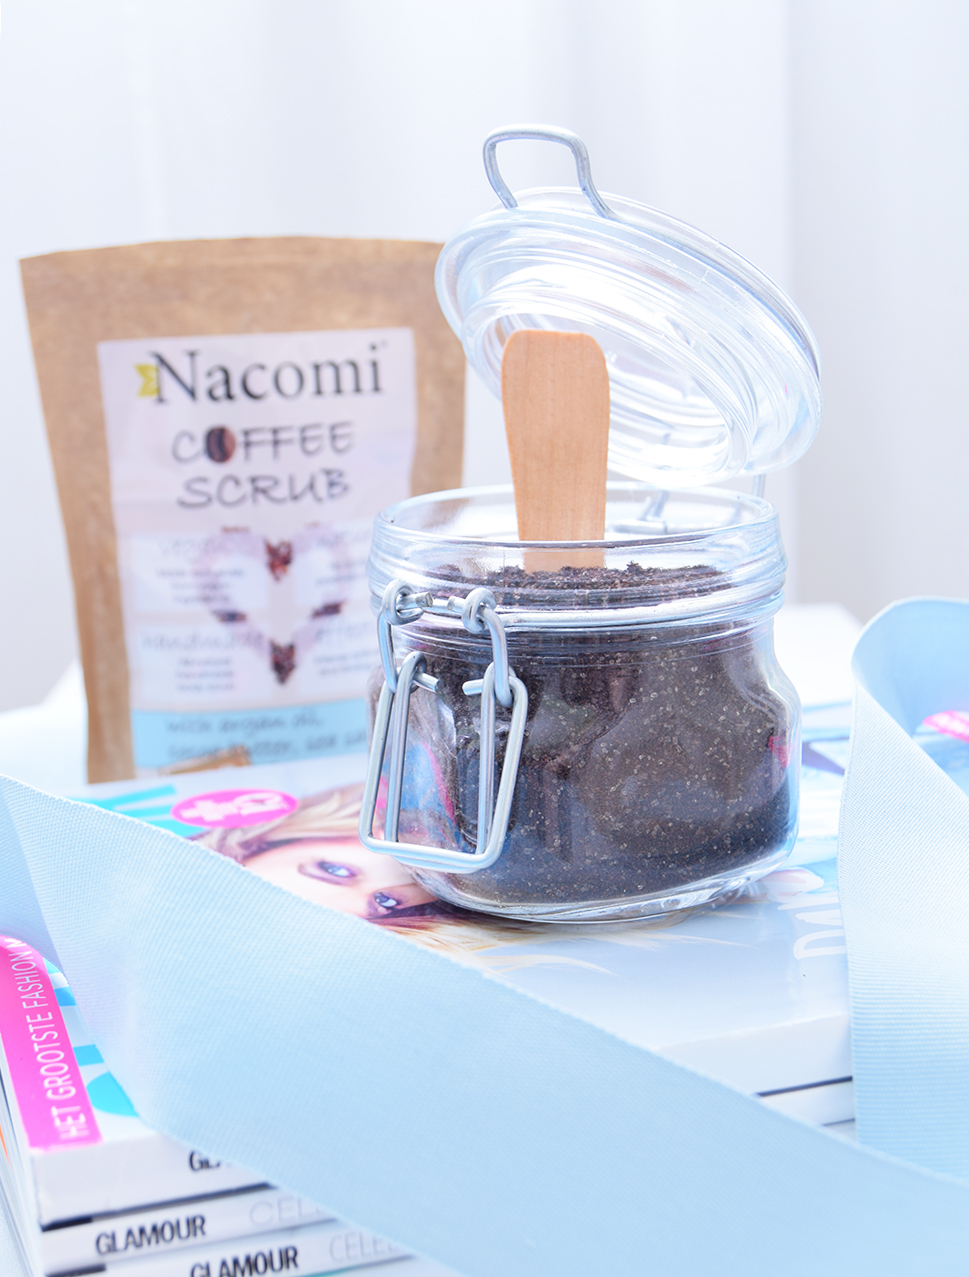 Nacomi vegan coffee scrub